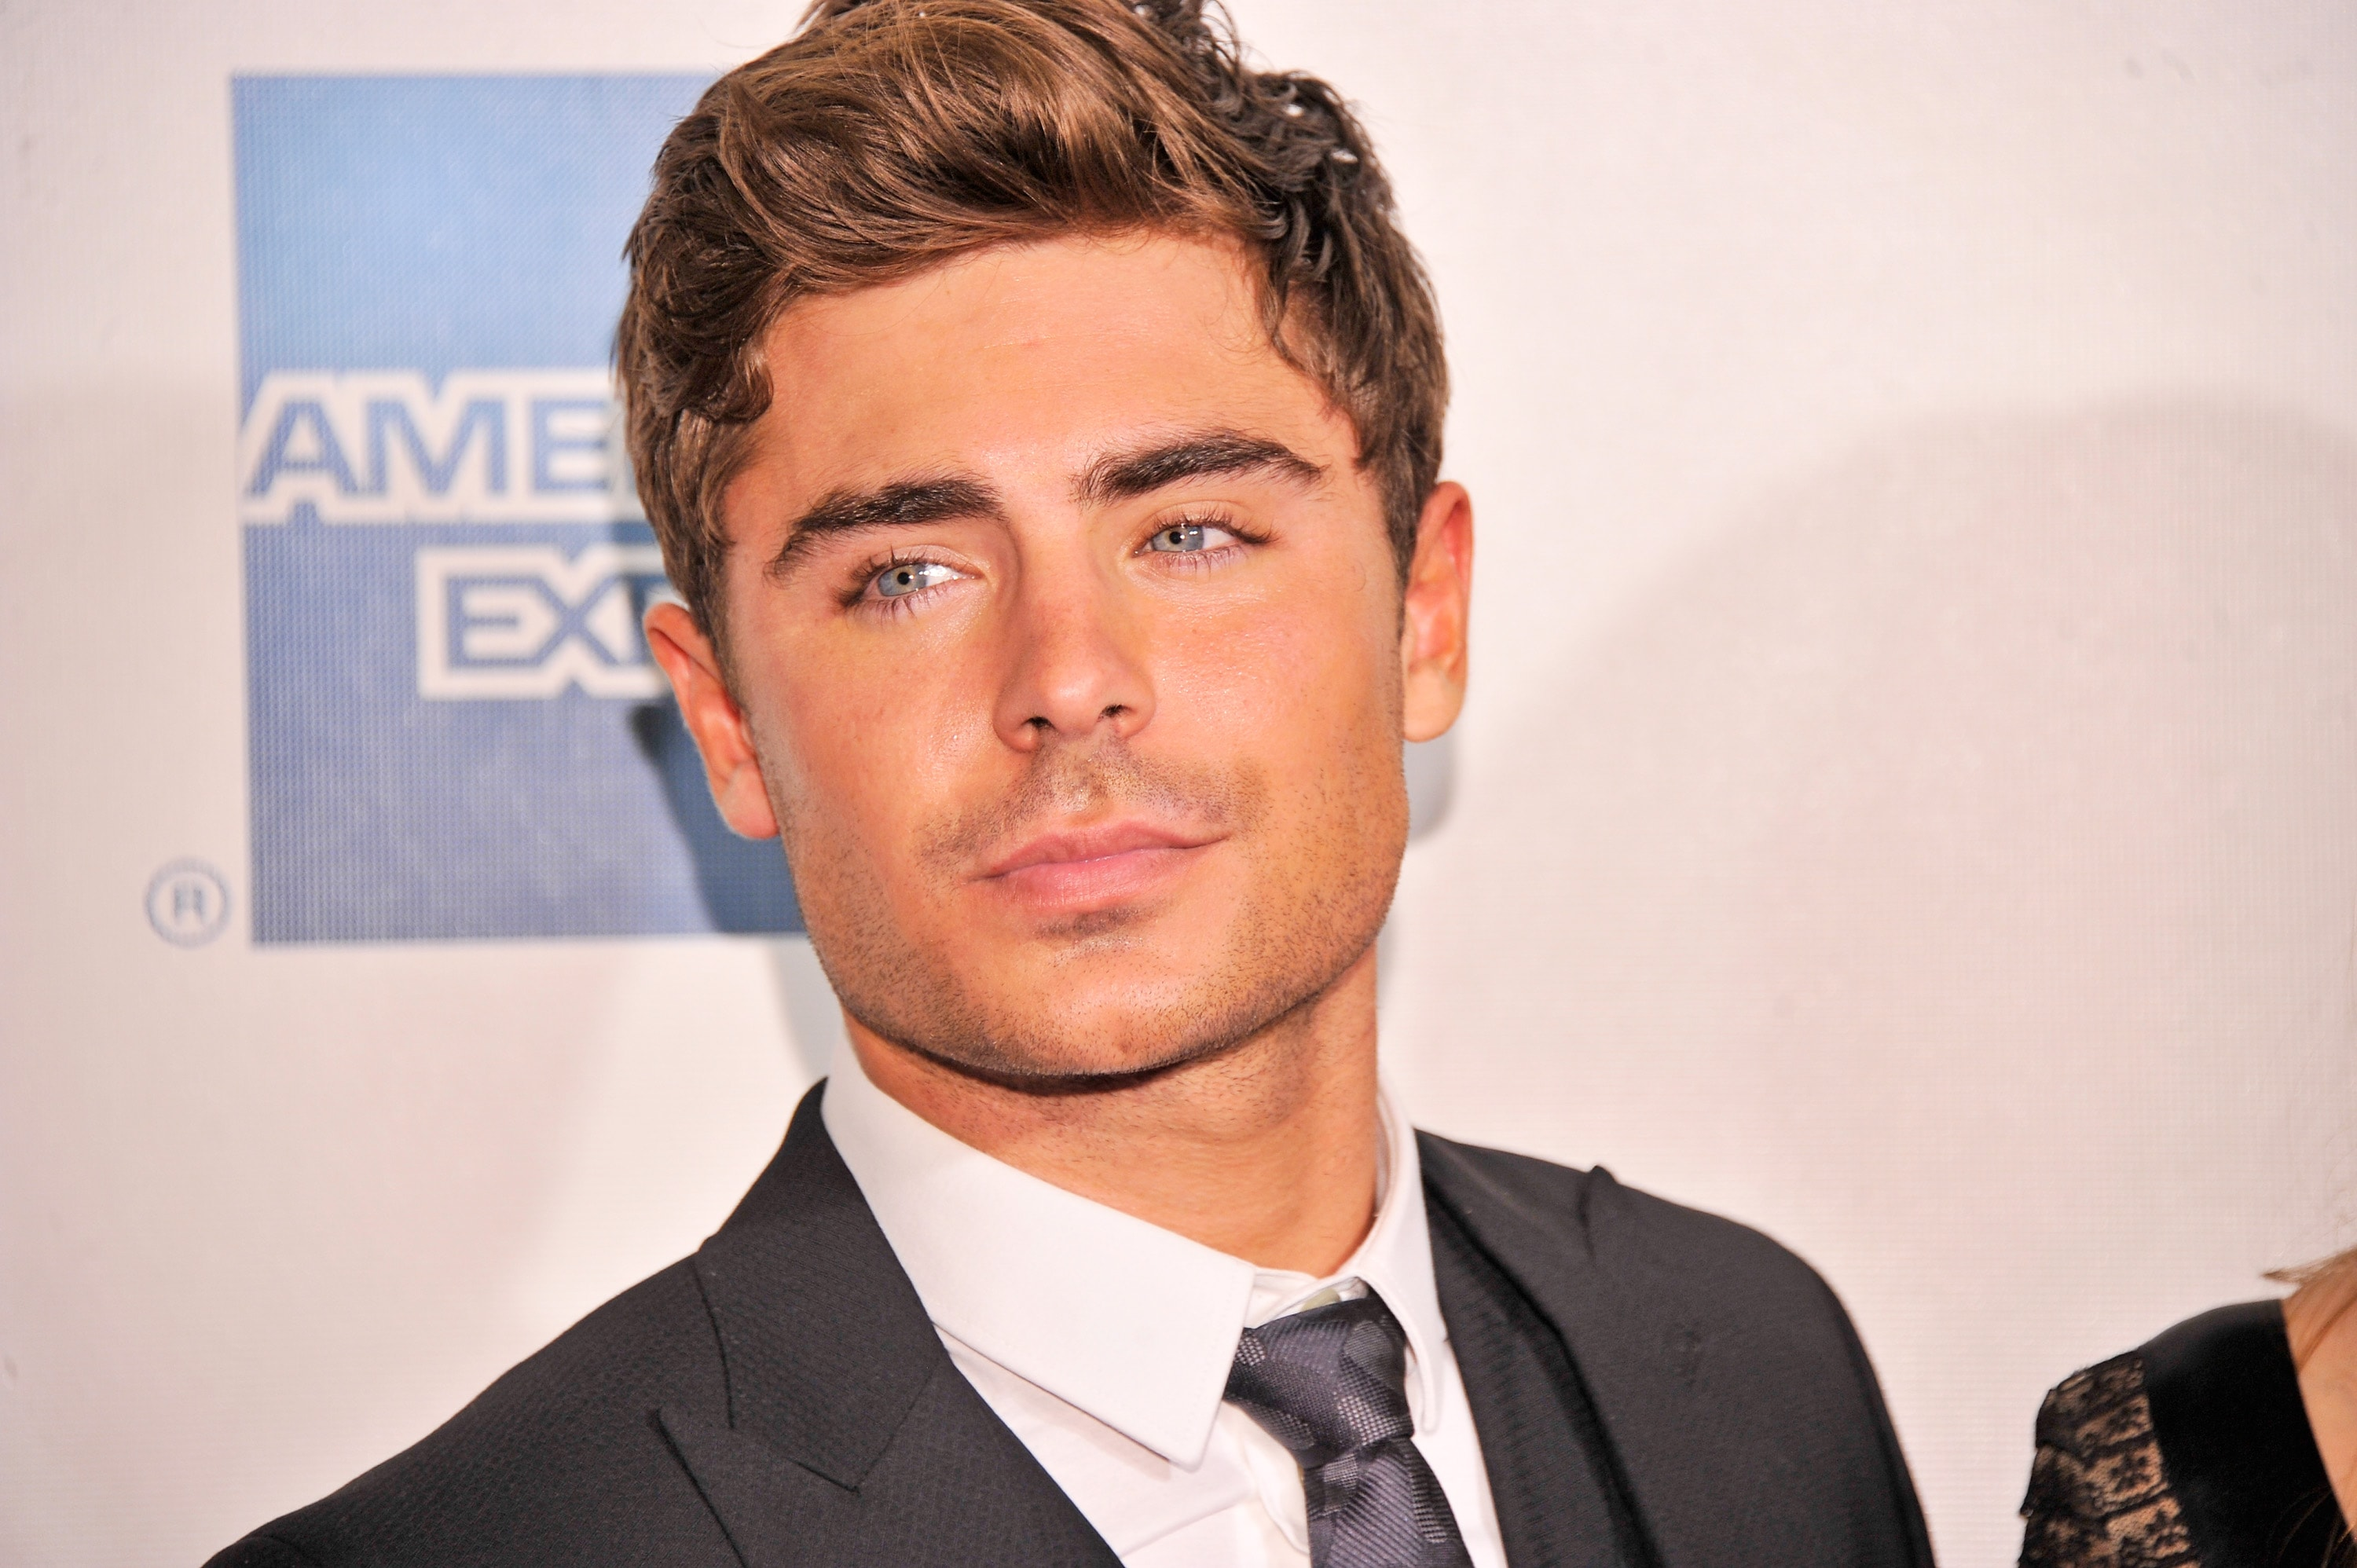 Zac Efron HQ wallpapers